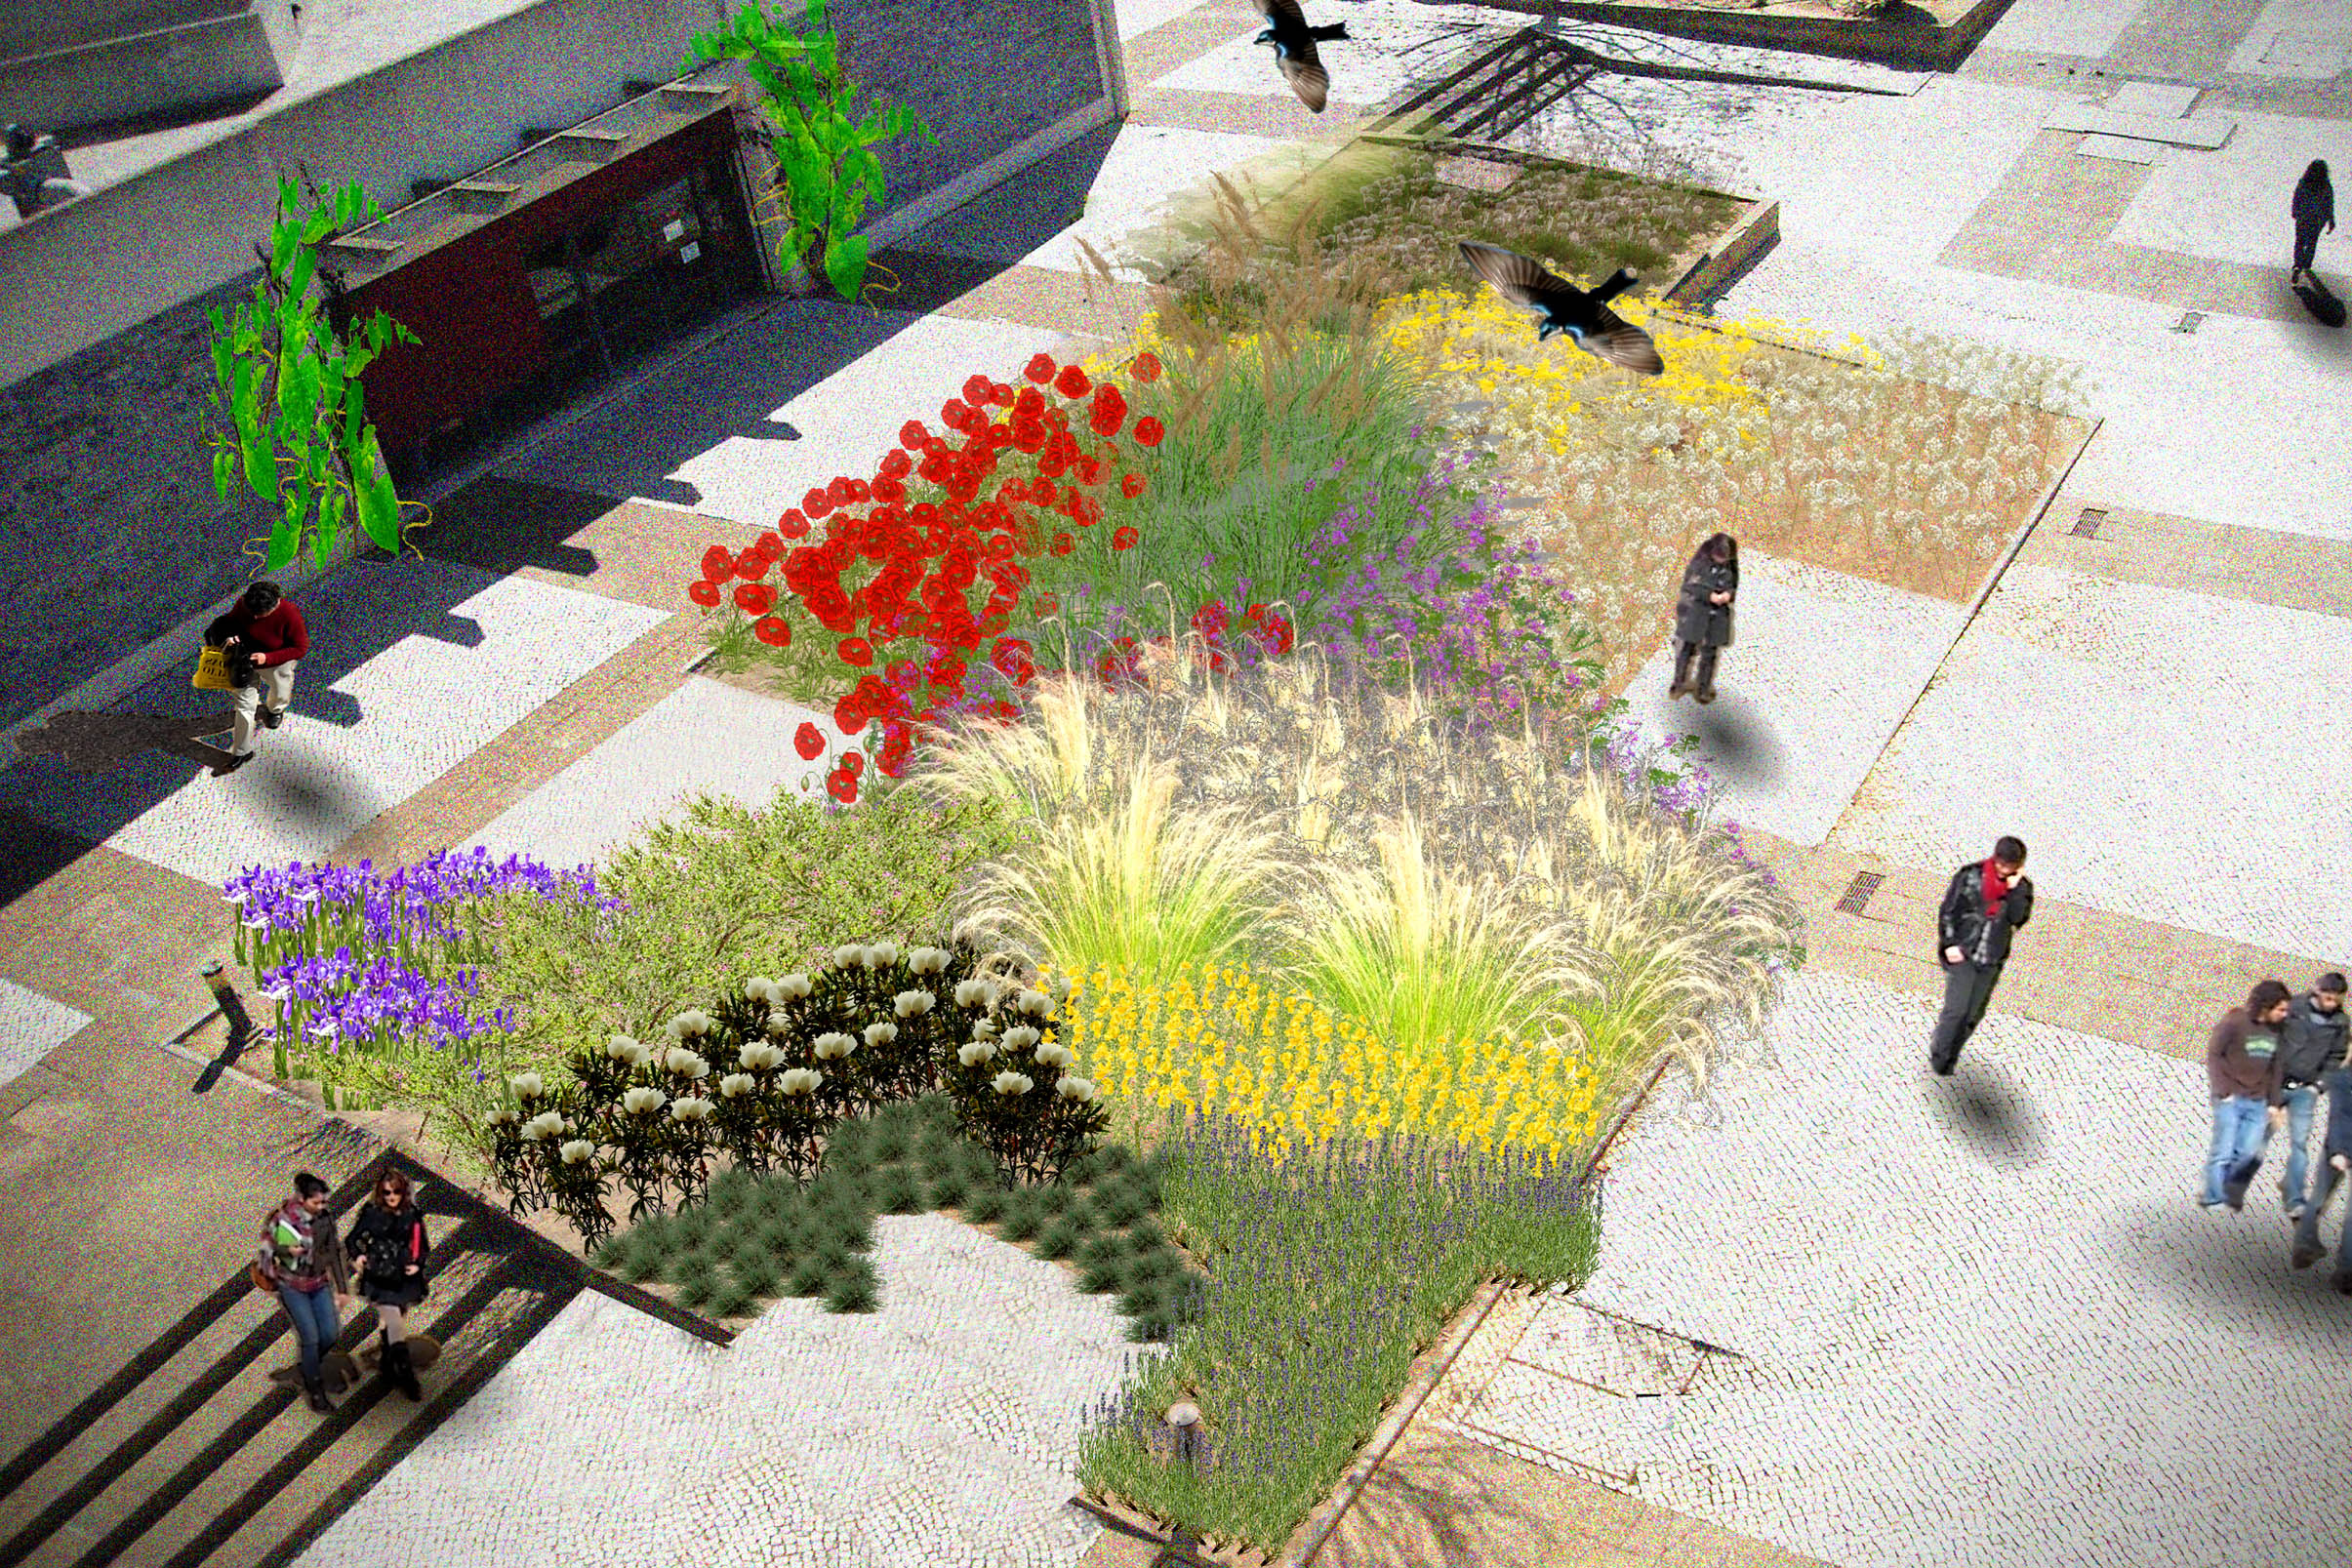 Conceptual landscape architecture planting plan photo